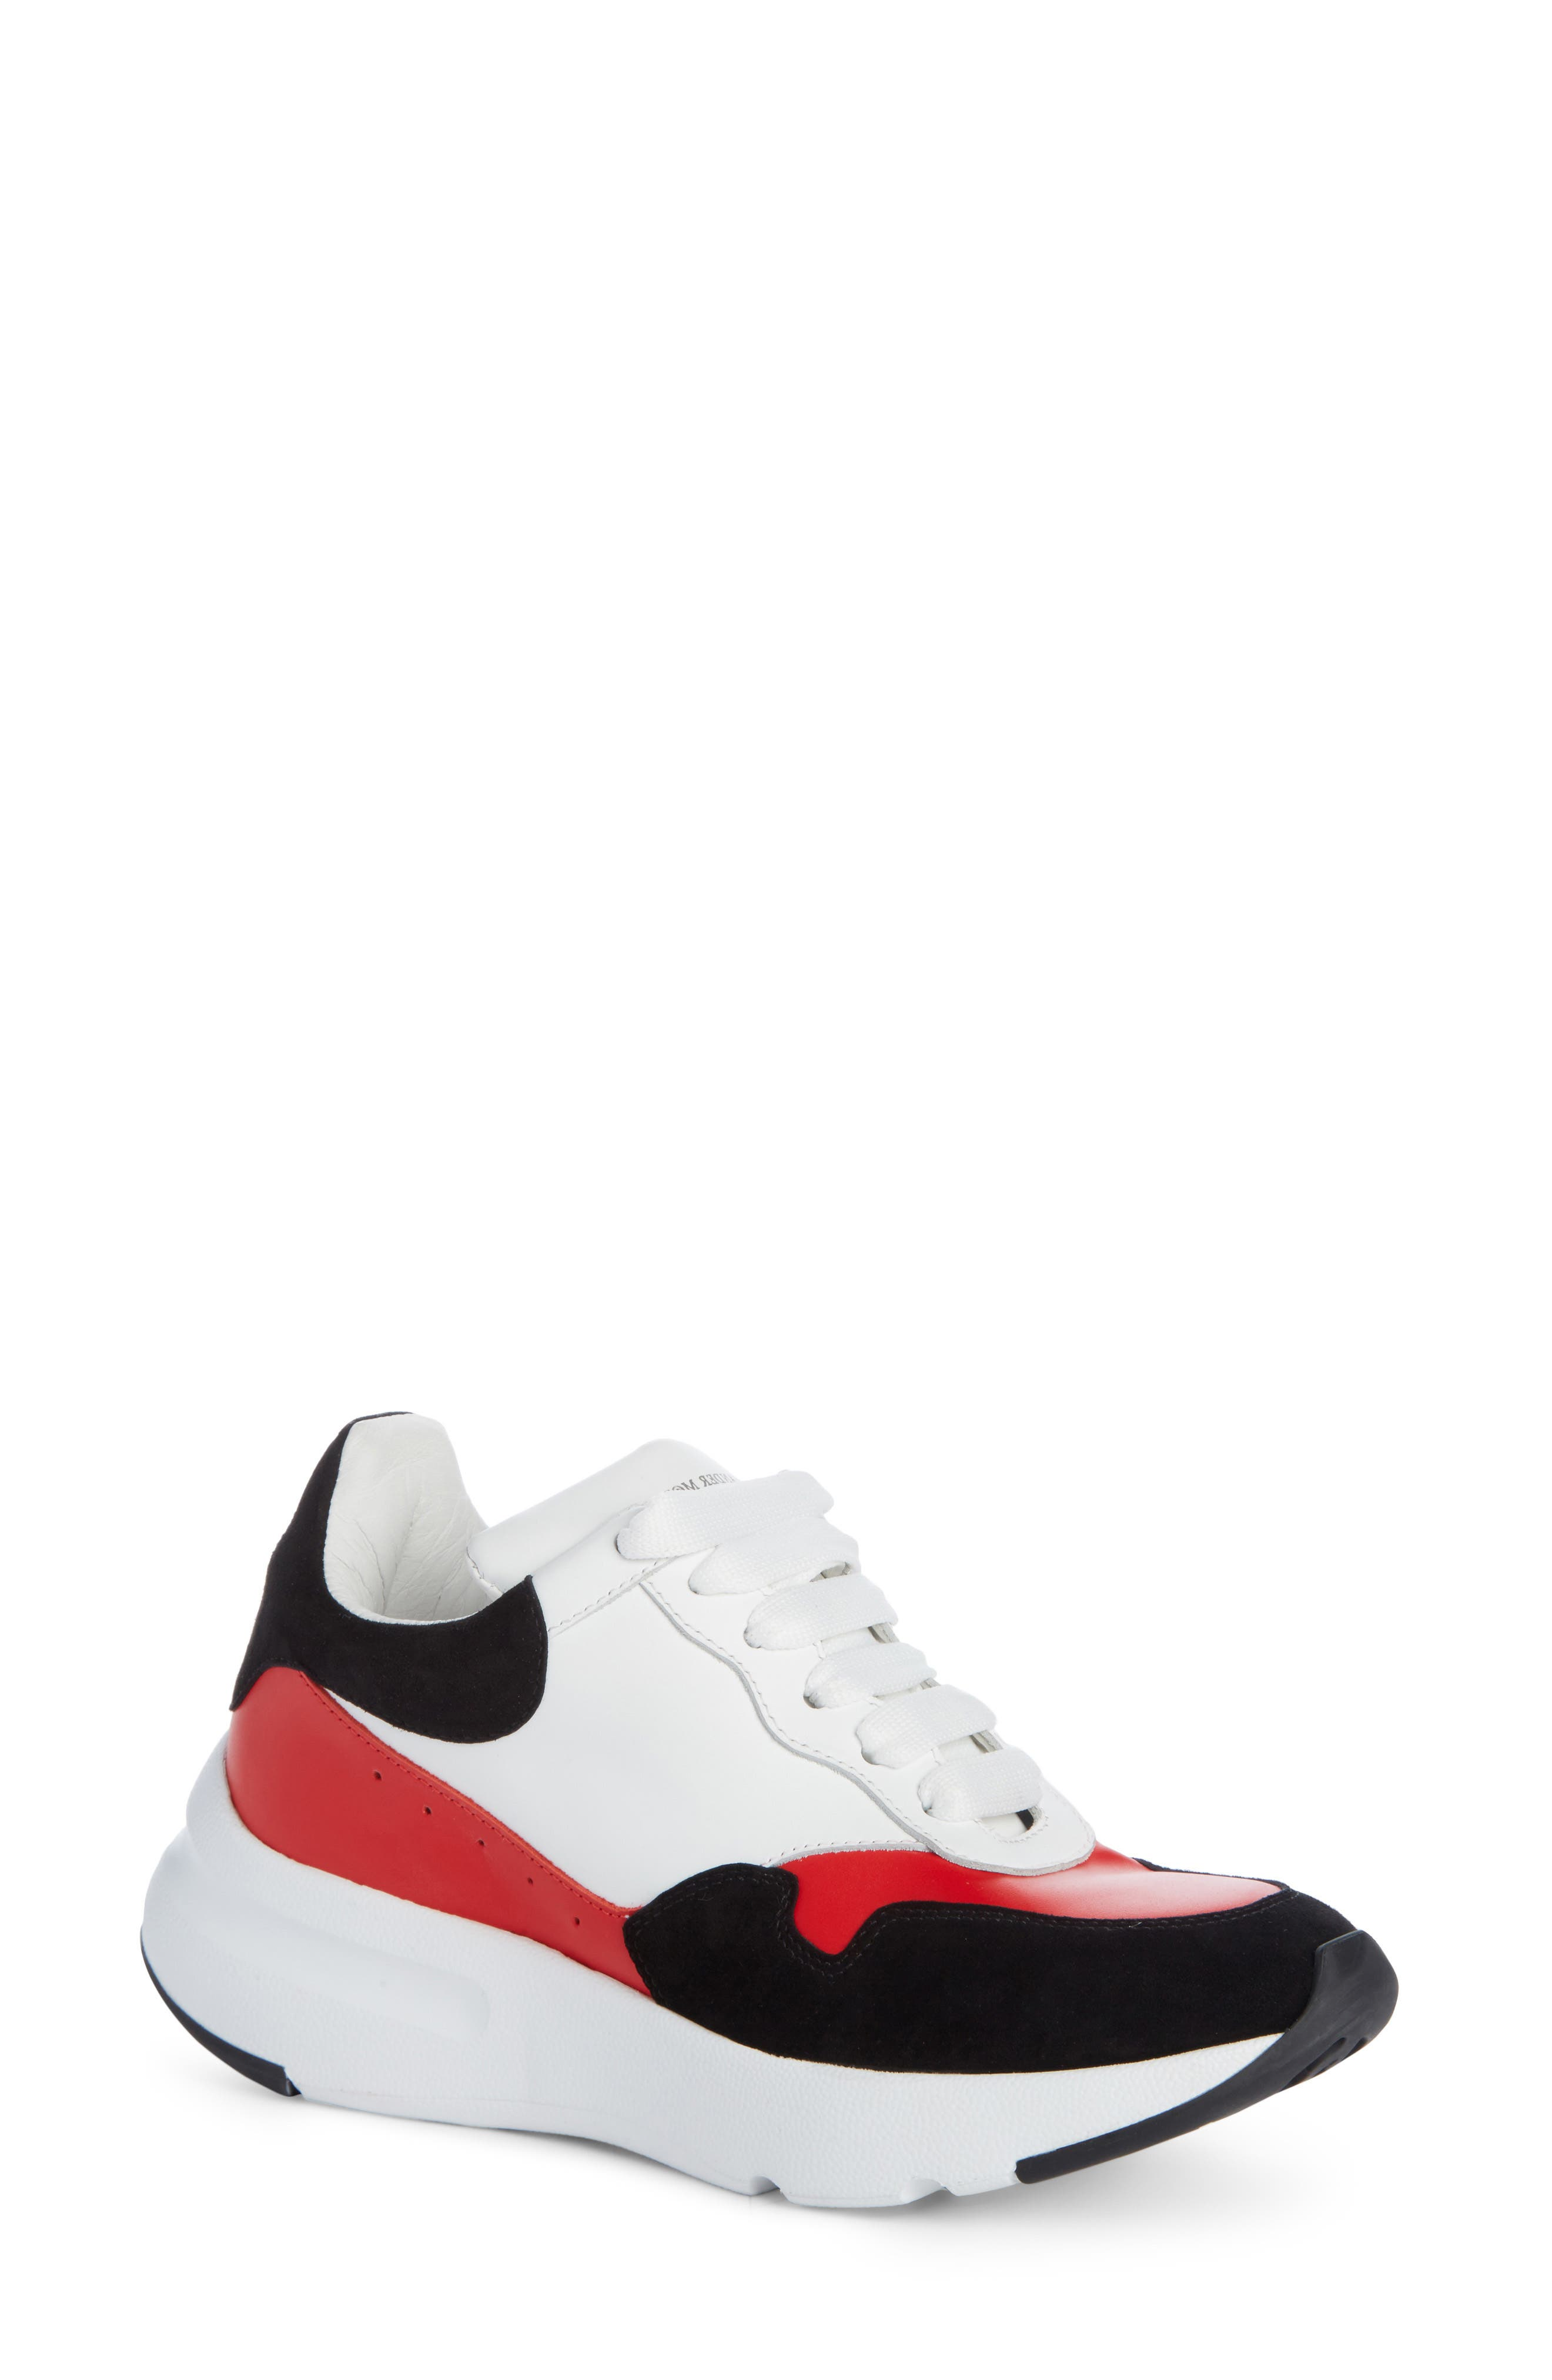 Runner Lace-Up Sneaker,                         Main,                         color, Black/ Red/ White